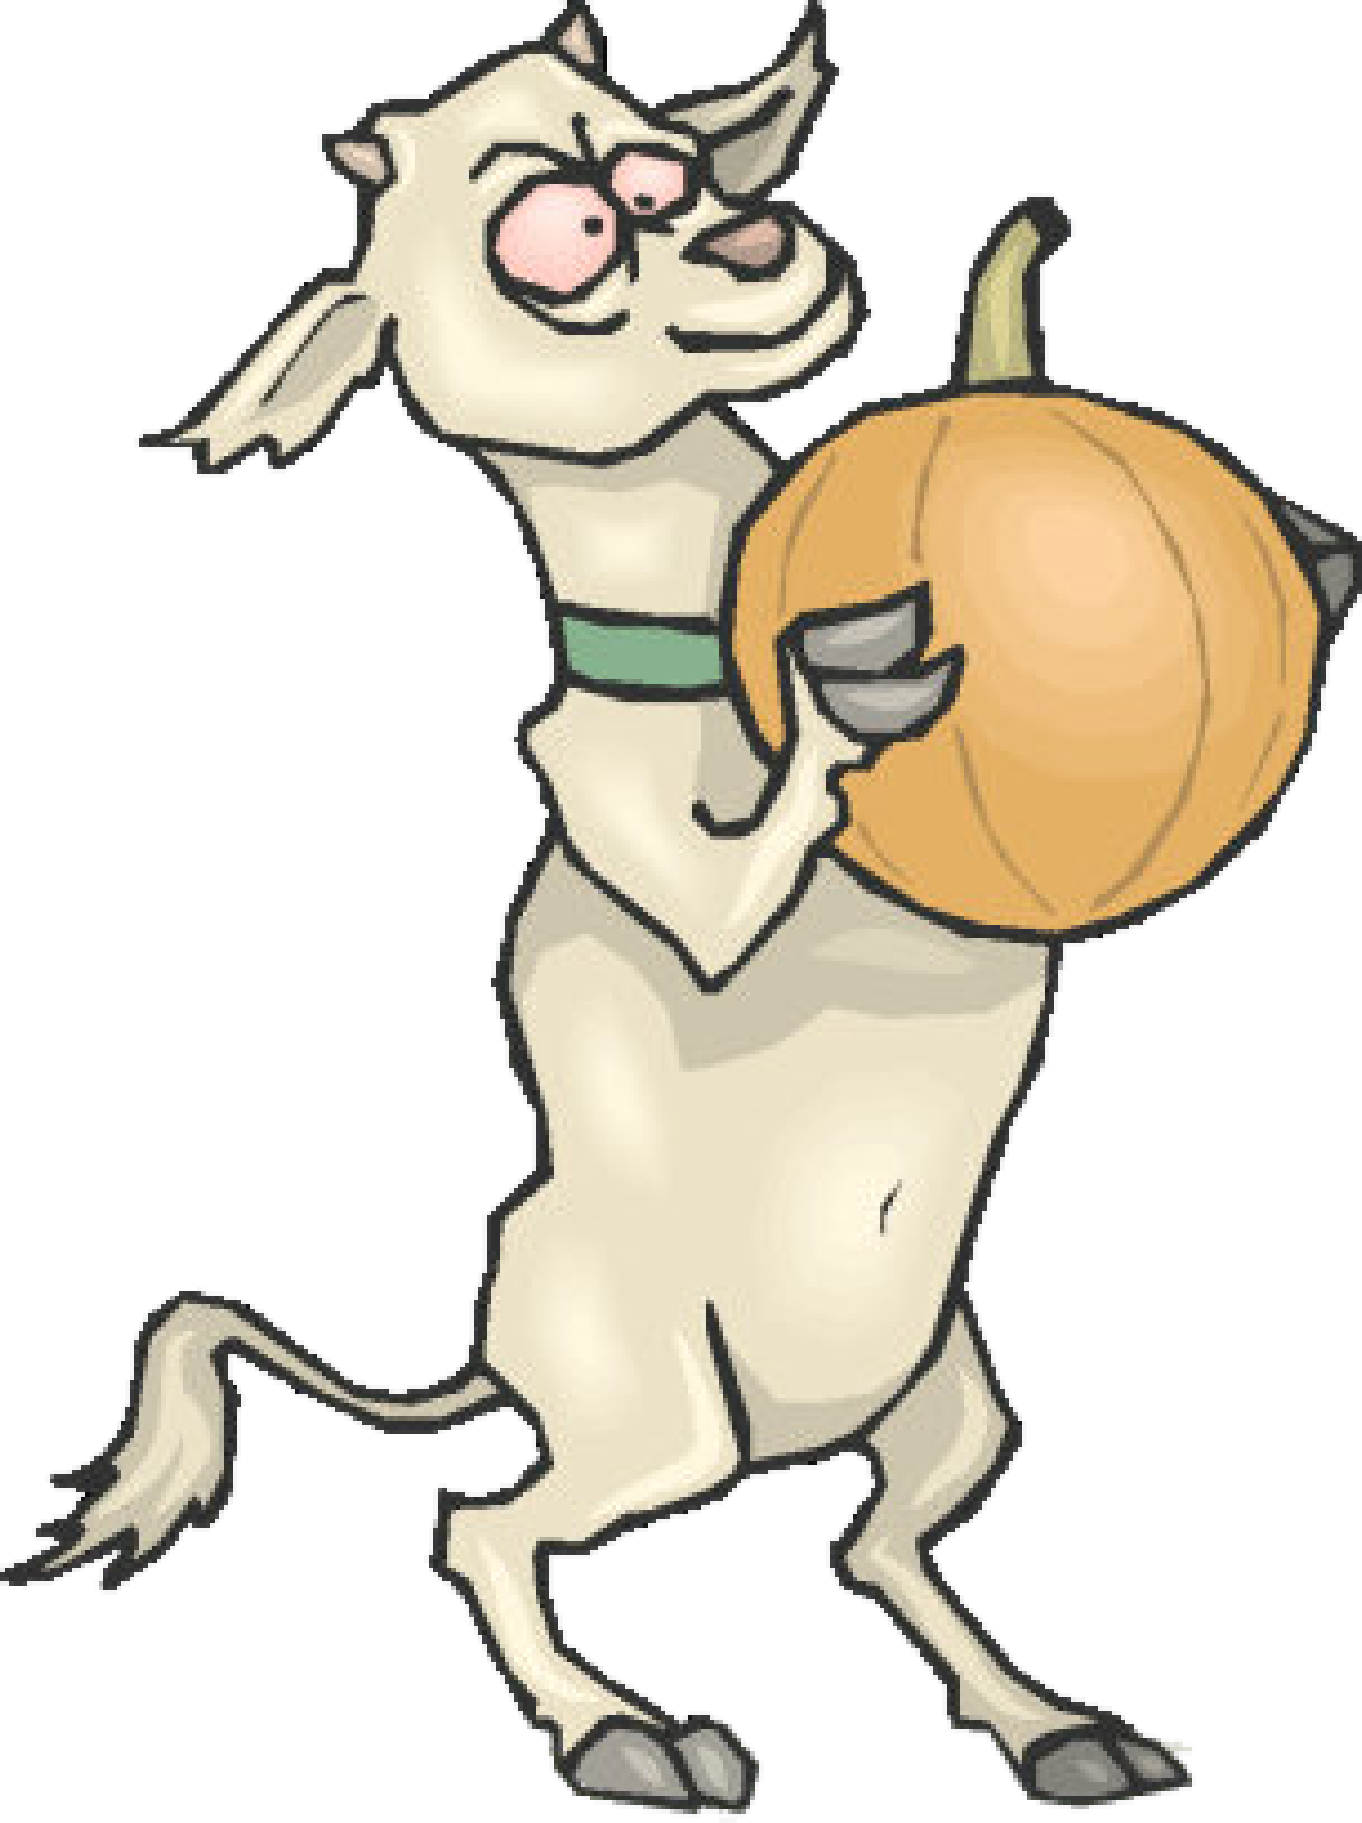 Goat with a melon